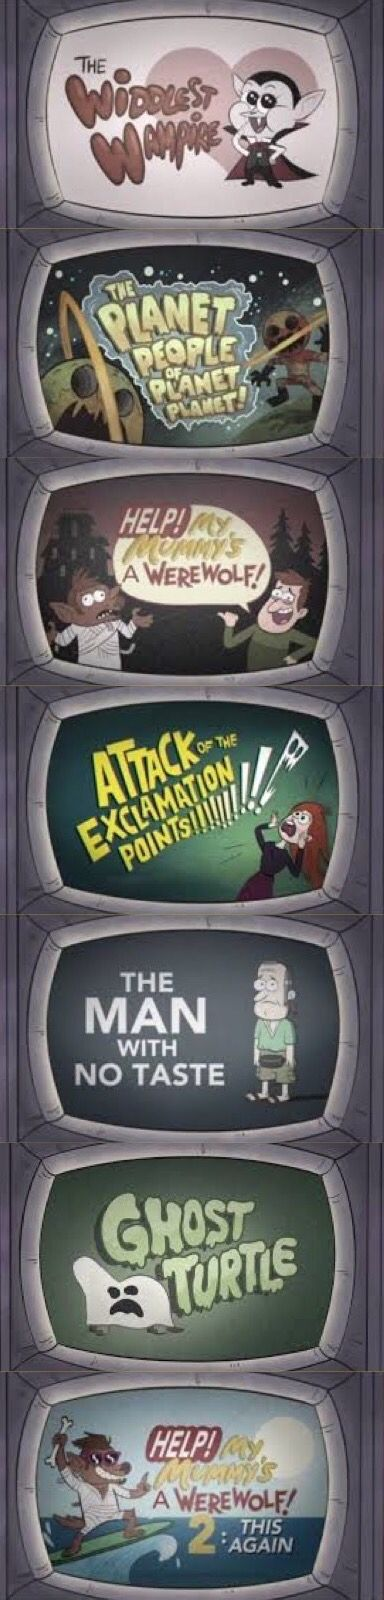 """The Gravity Falls Bargian Movie Showcase! """"Let's never watch this channel again."""""""